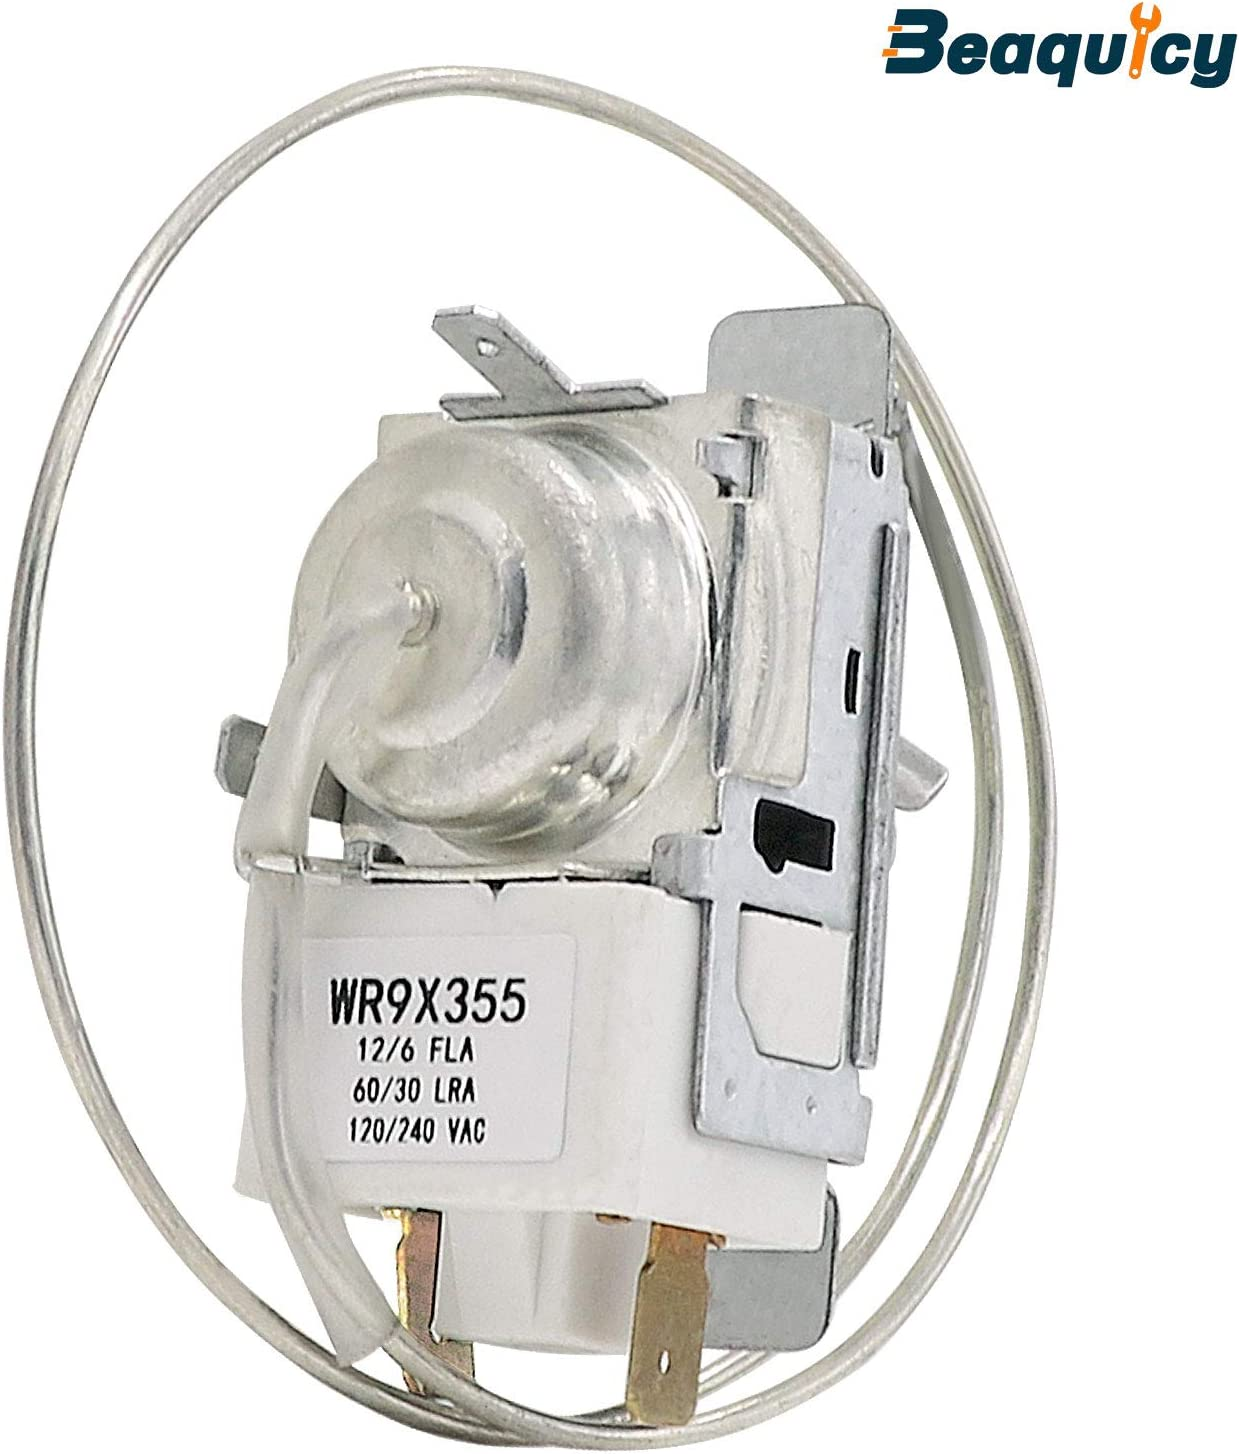 Beaquicy WR9X355 Temperature Control Thermostat - Replacement for GE Hotpoint Refrigerator - WR9X355 Universal Cold Control